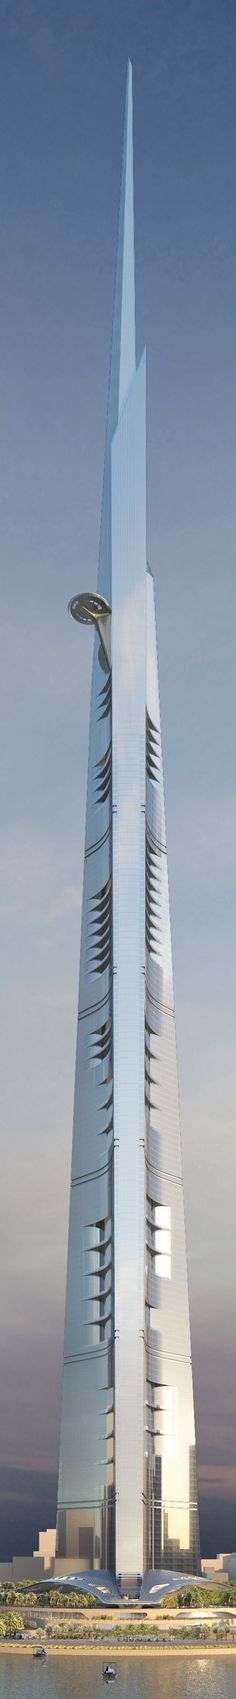 Kingdom Tower would surpass the Burj Khalifa by at least 173 meters feet). Designed by Chicago's Adrian Smith + Gordon Gill Architecture, Kingdom Tower in Jeddah, Saudi Arabia would be over 1 kilometer tall Unusual Buildings, Interesting Buildings, Amazing Buildings, Modern Buildings, Futuristic Architecture, Beautiful Architecture, Contemporary Architecture, Art And Architecture, Arquitectos Zaha Hadid